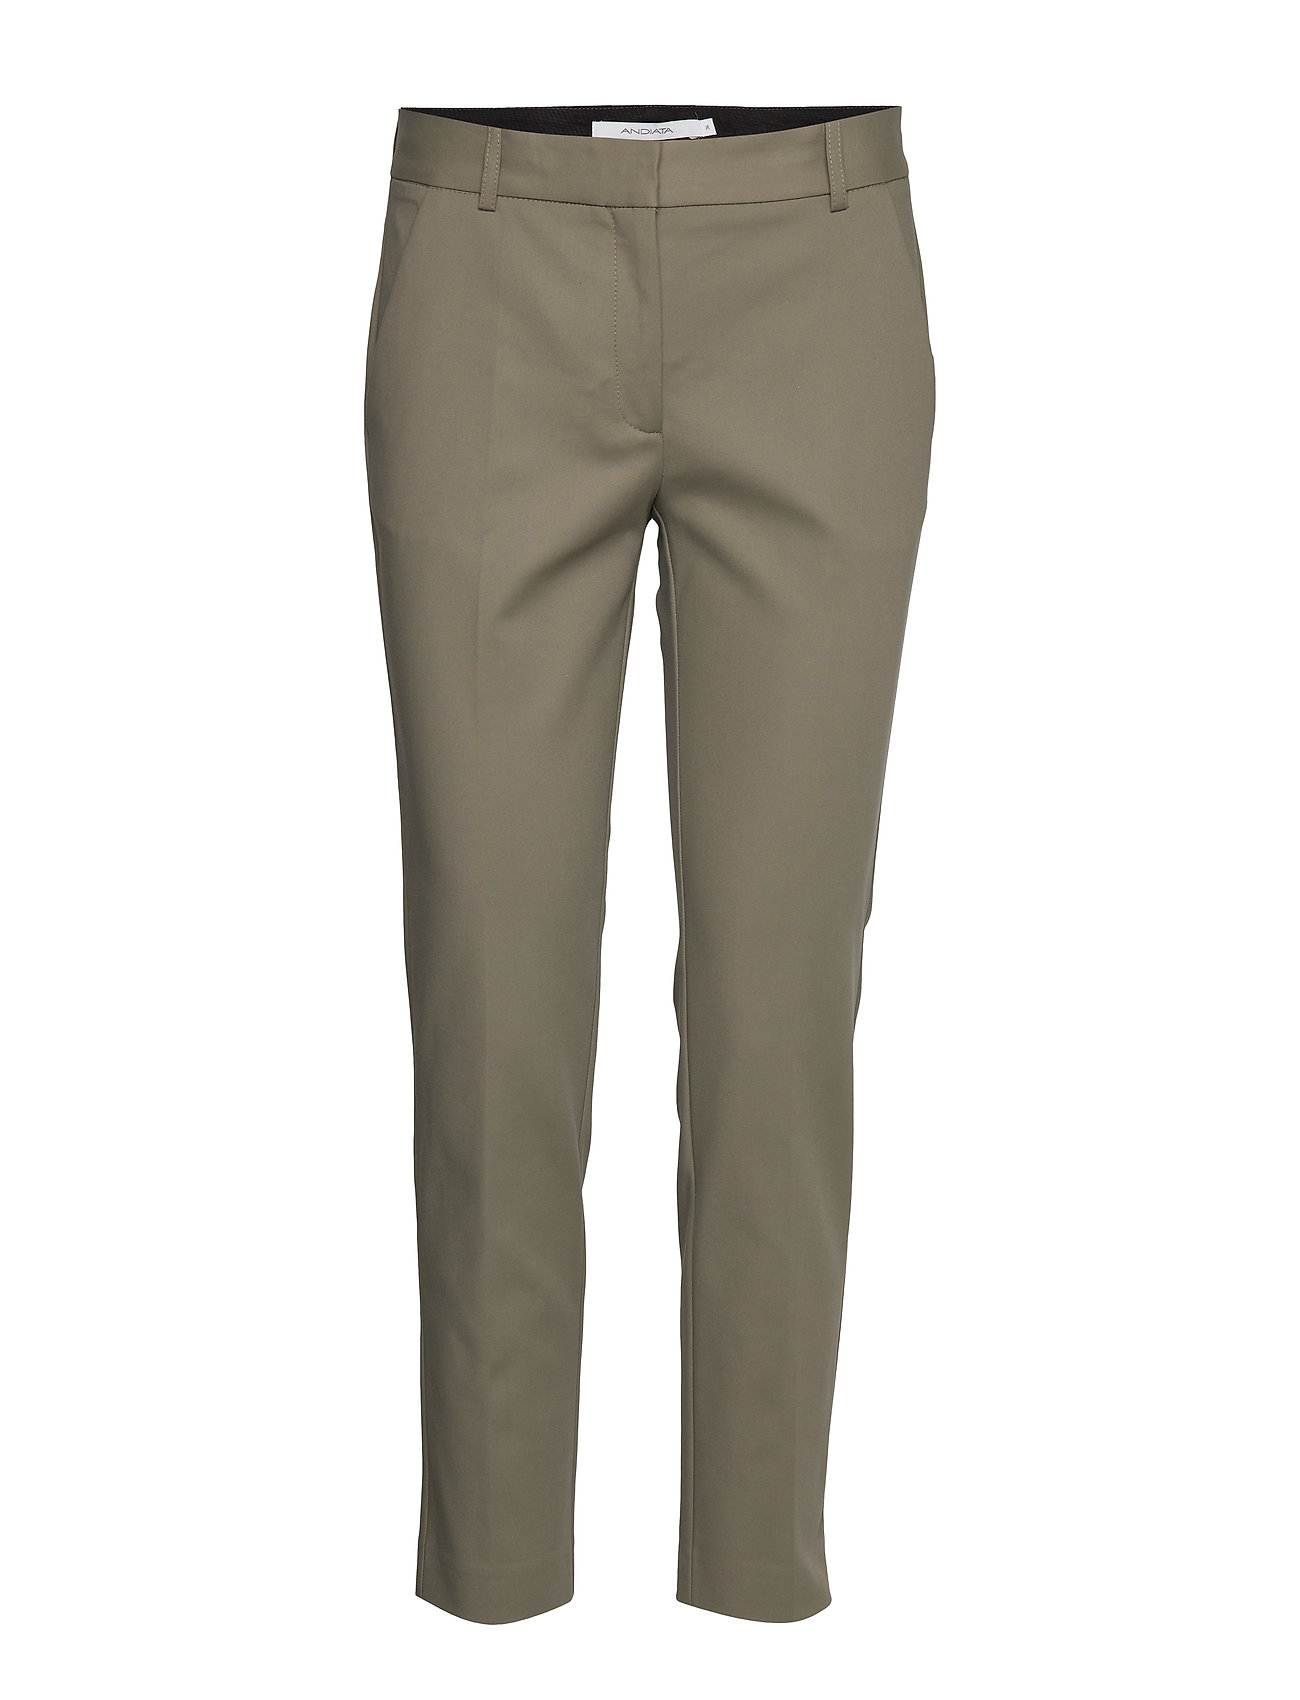 Image of Jamy Trousers Chinos Bukser Grøn Andiata (3339884209)